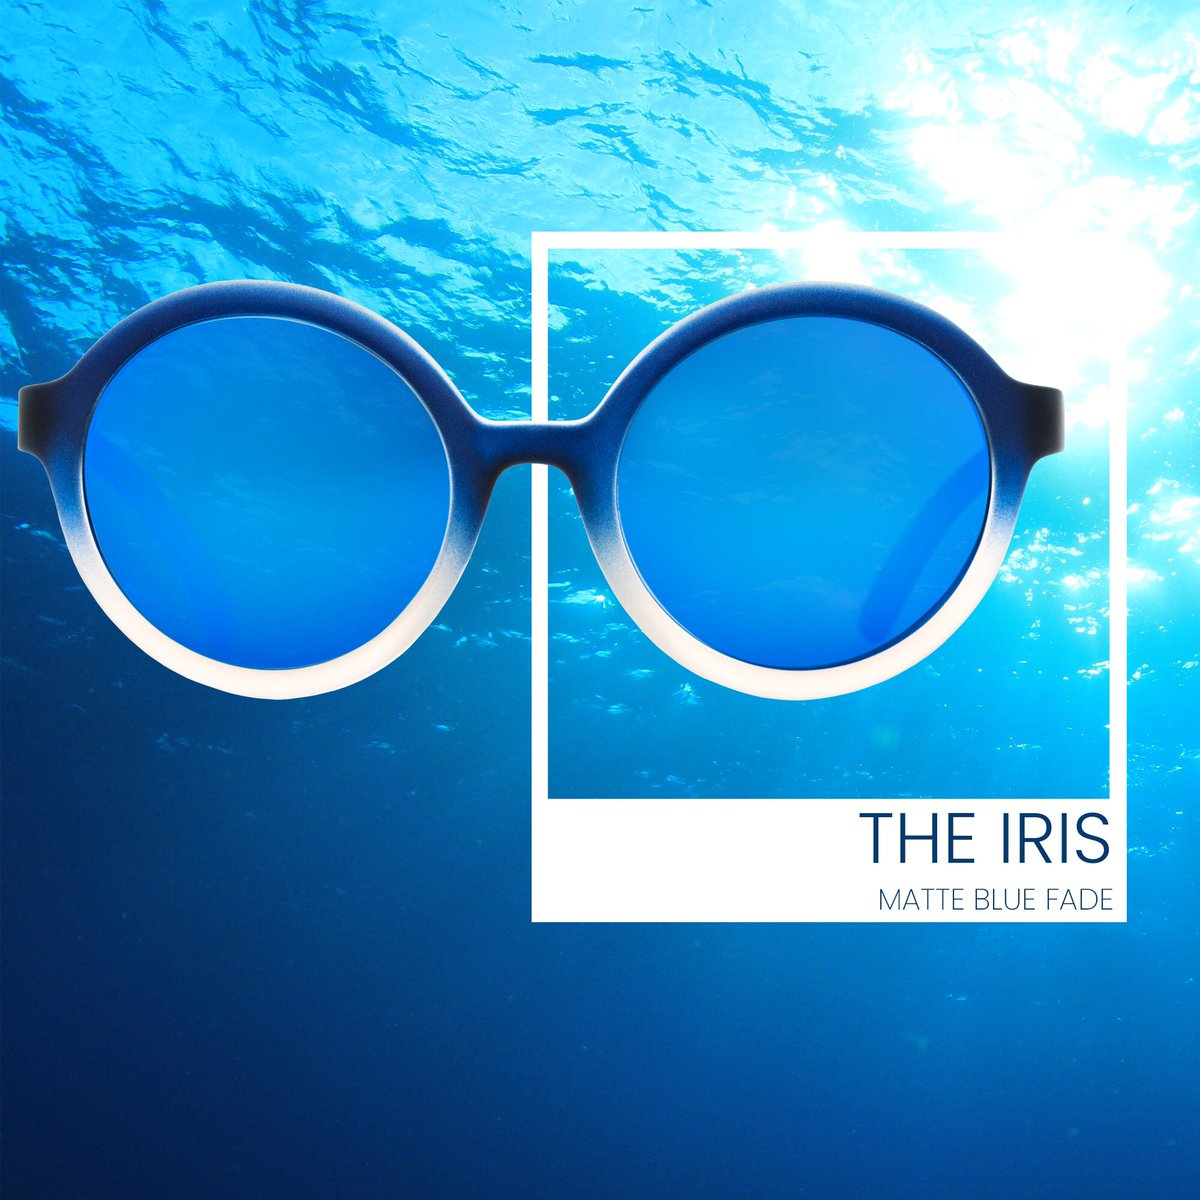 The Iris are hippy chic with a glamour twist, and crafted from eco-friendly bio-materials... https://t.co/pAj68cySTd https://t.co/rPVSCUae8V